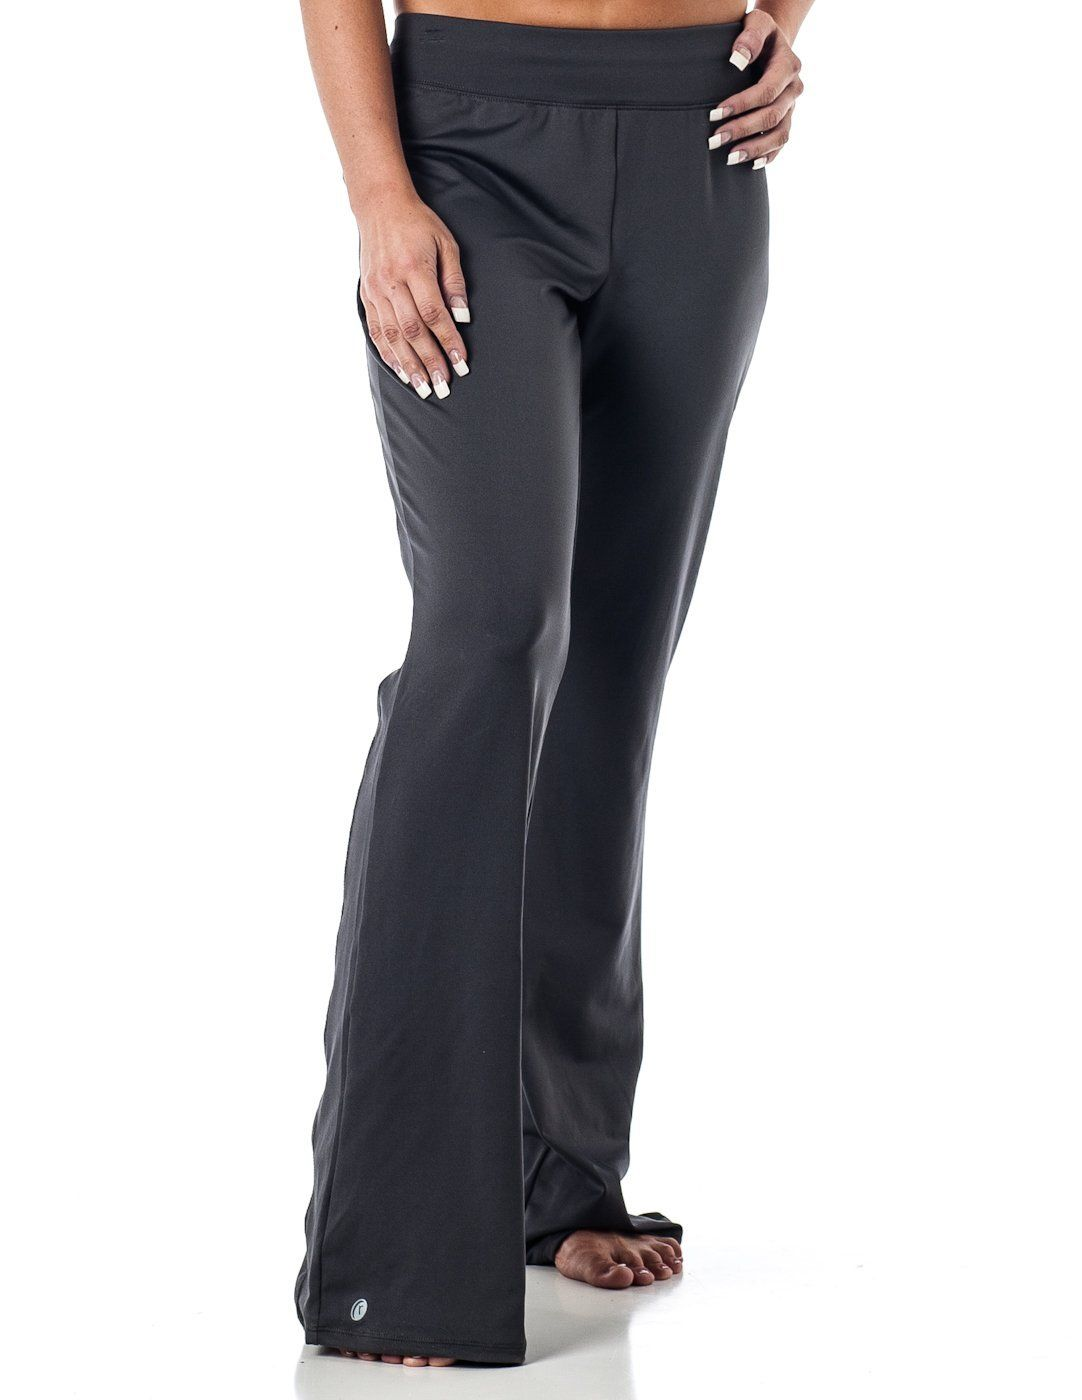 6f1ba933deb08 Russell Athletic Tall Womens Workout Pants ($19.99) | Favorite ...